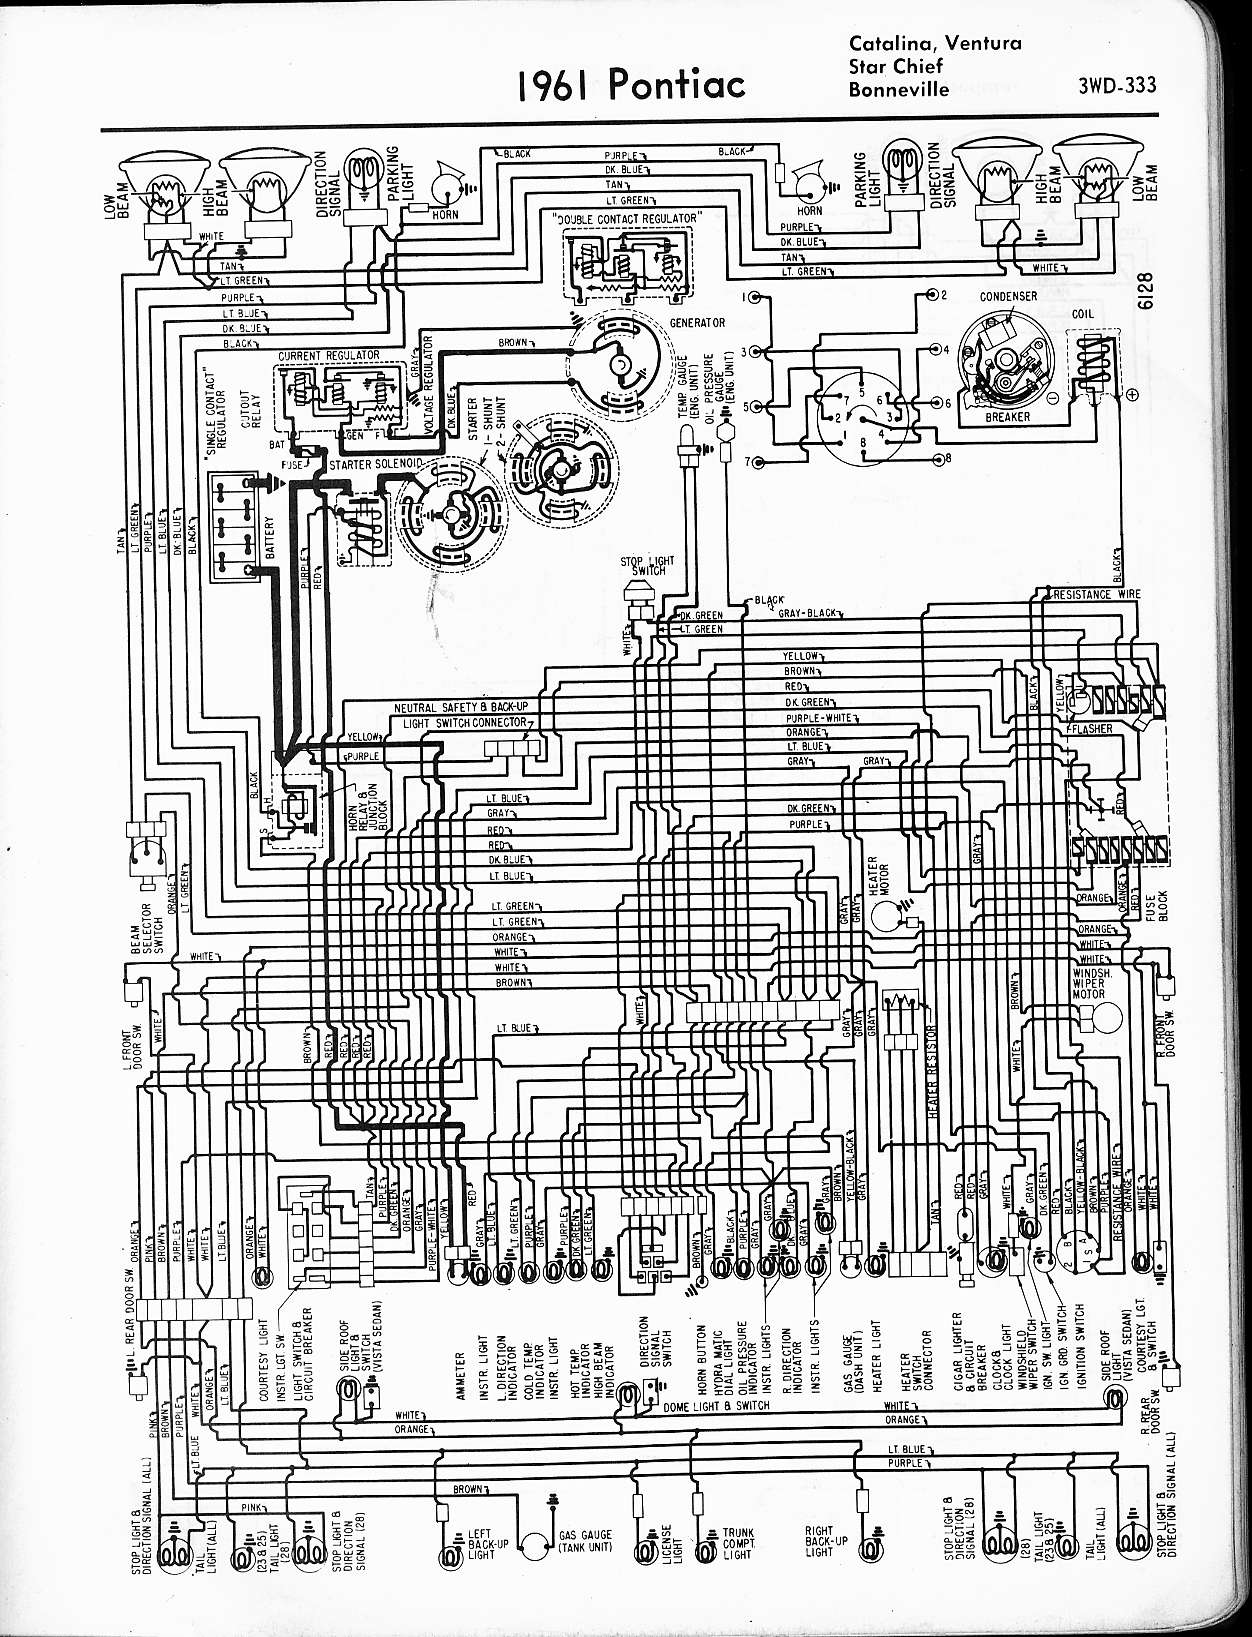 92E8 68 Pontiac Gto Wiring Diagram | Wiring ResourcesWiring Resources